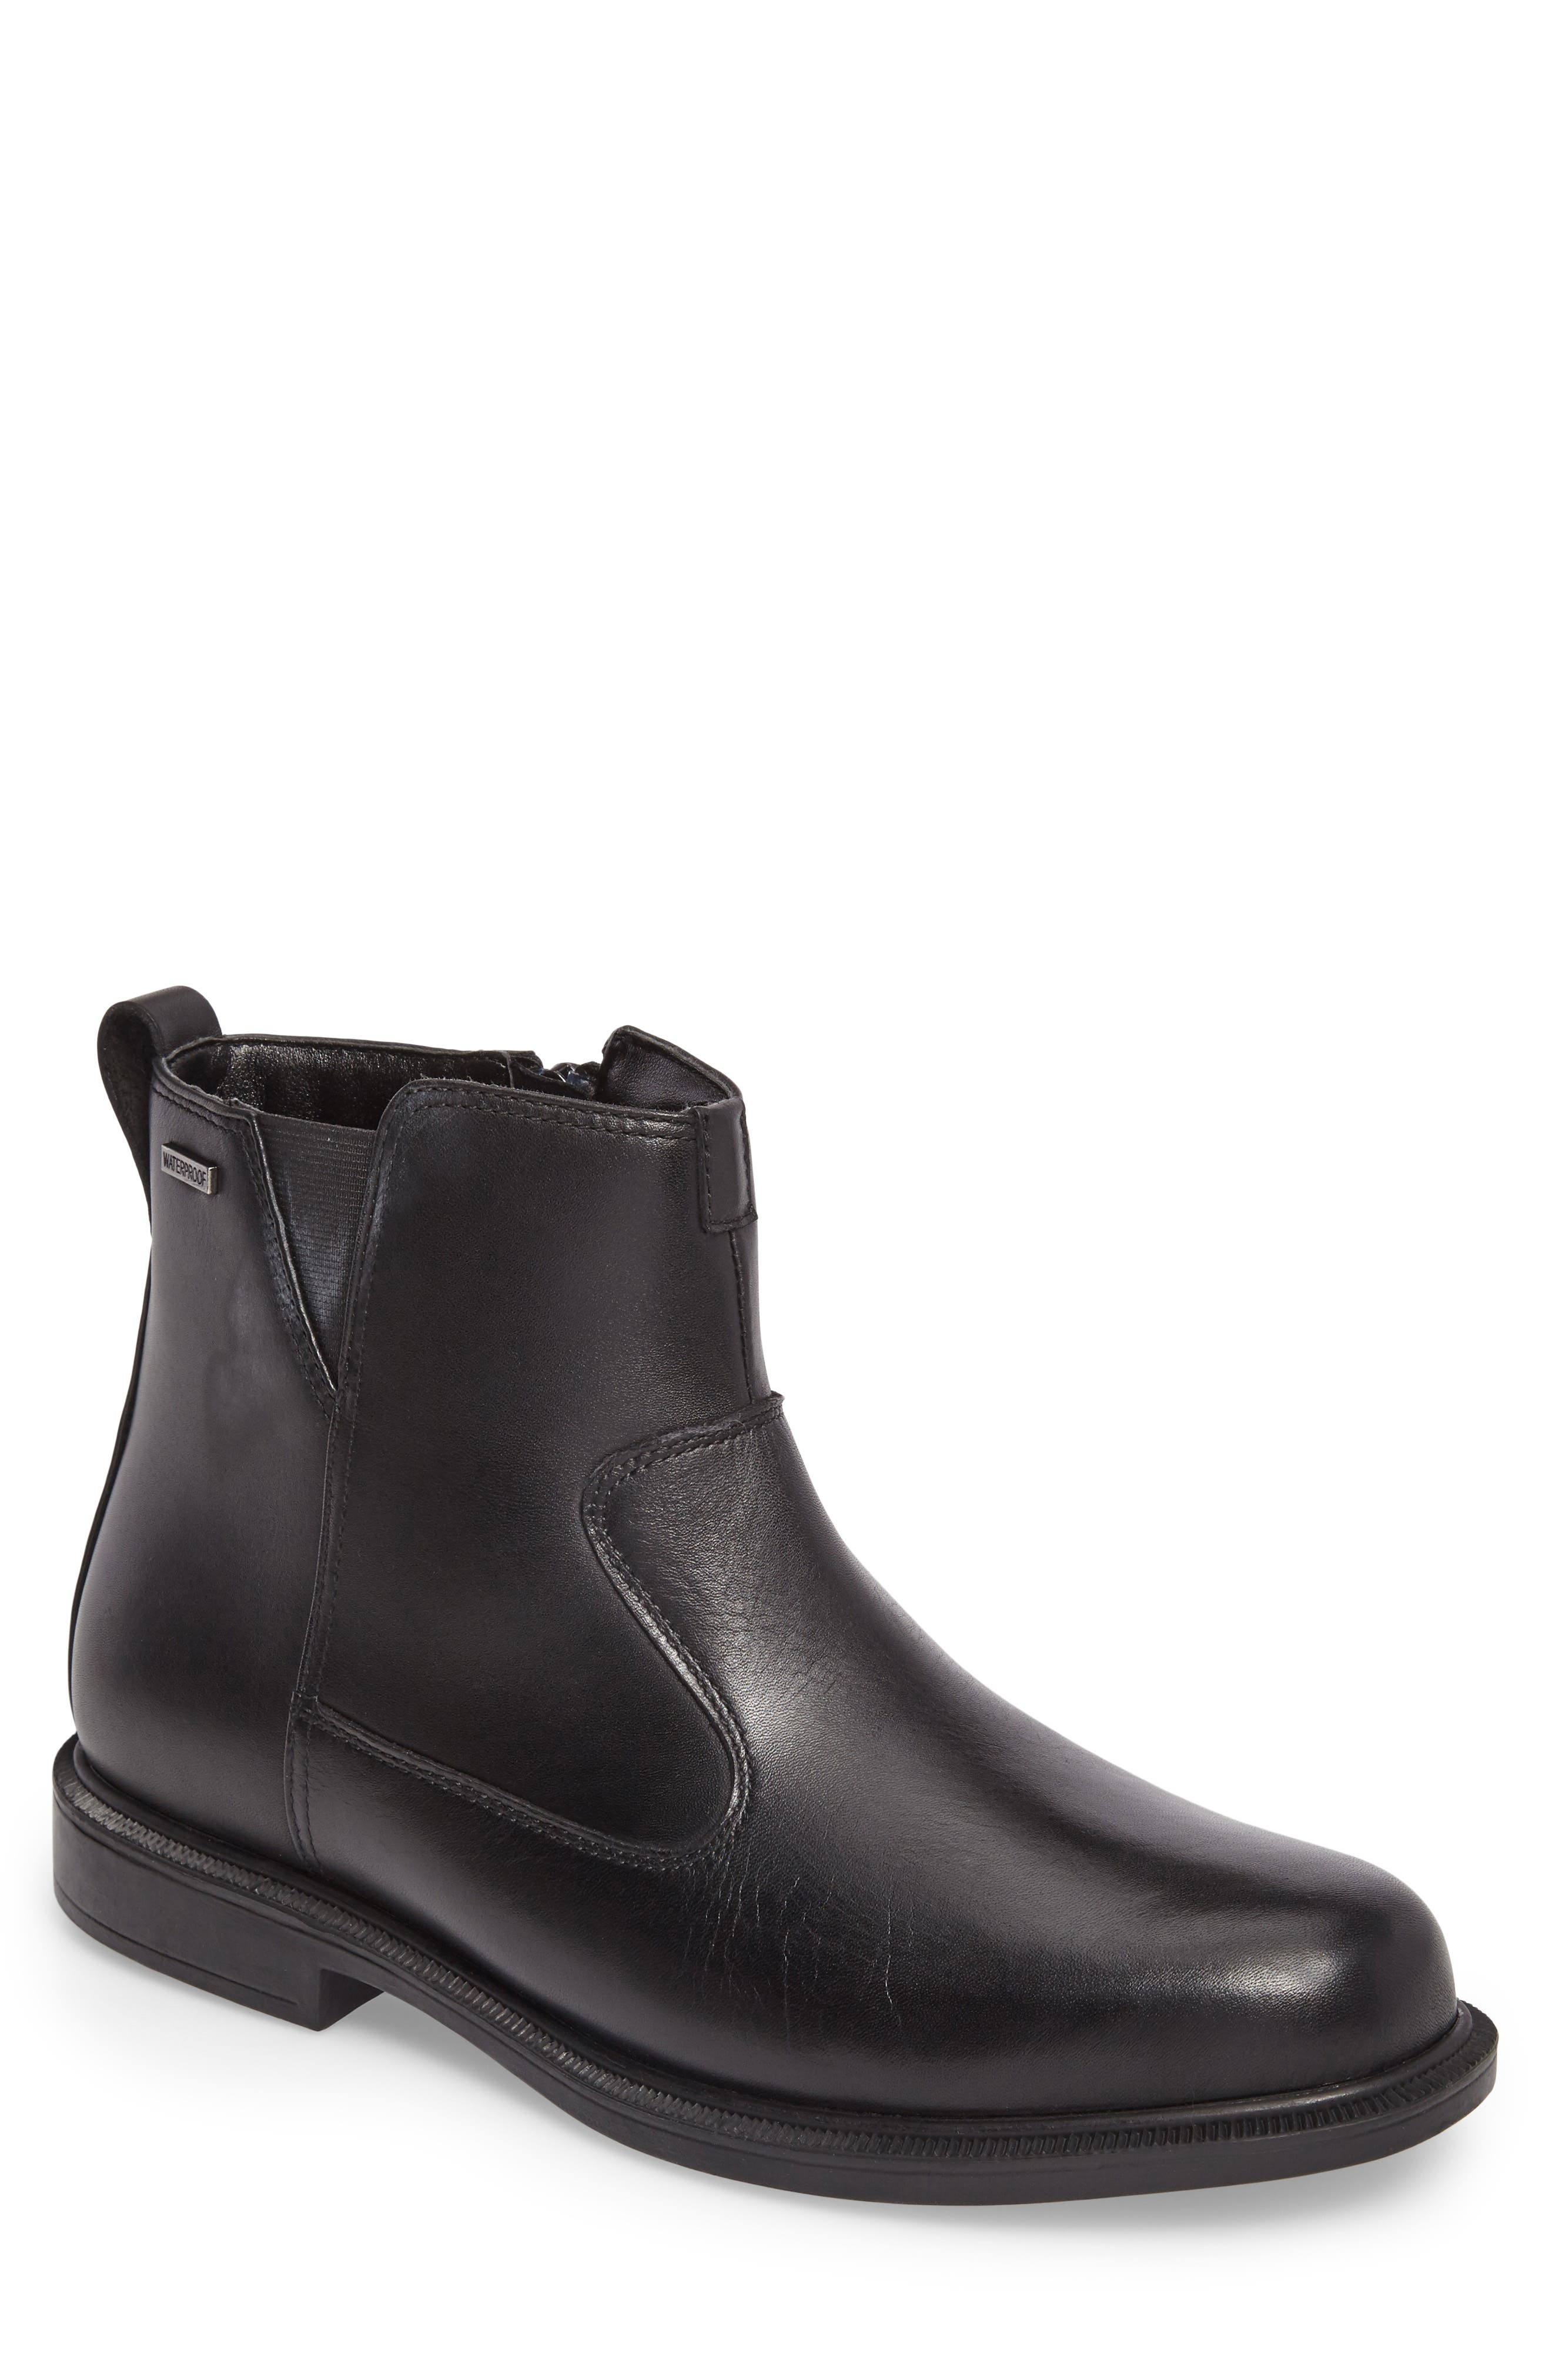 James Zip Boot,                         Main,                         color, Black Leather